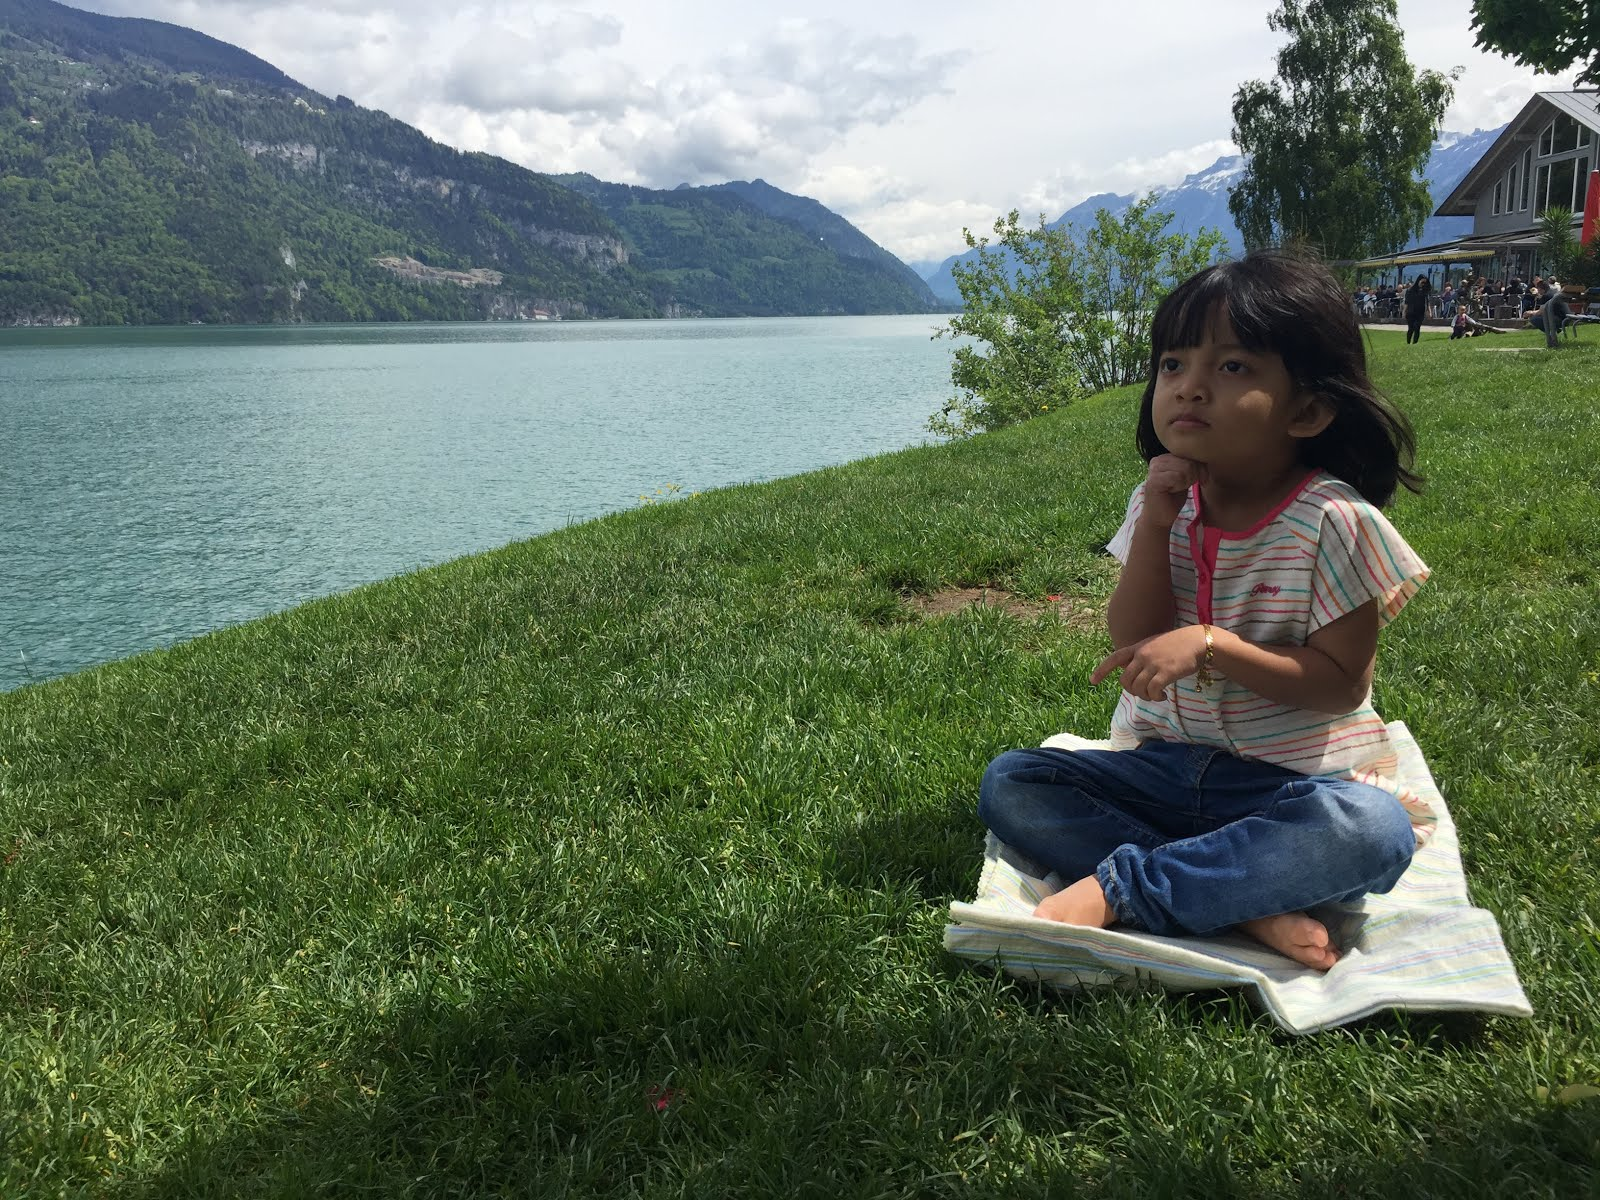 Interlaken, Switzerland May 2015